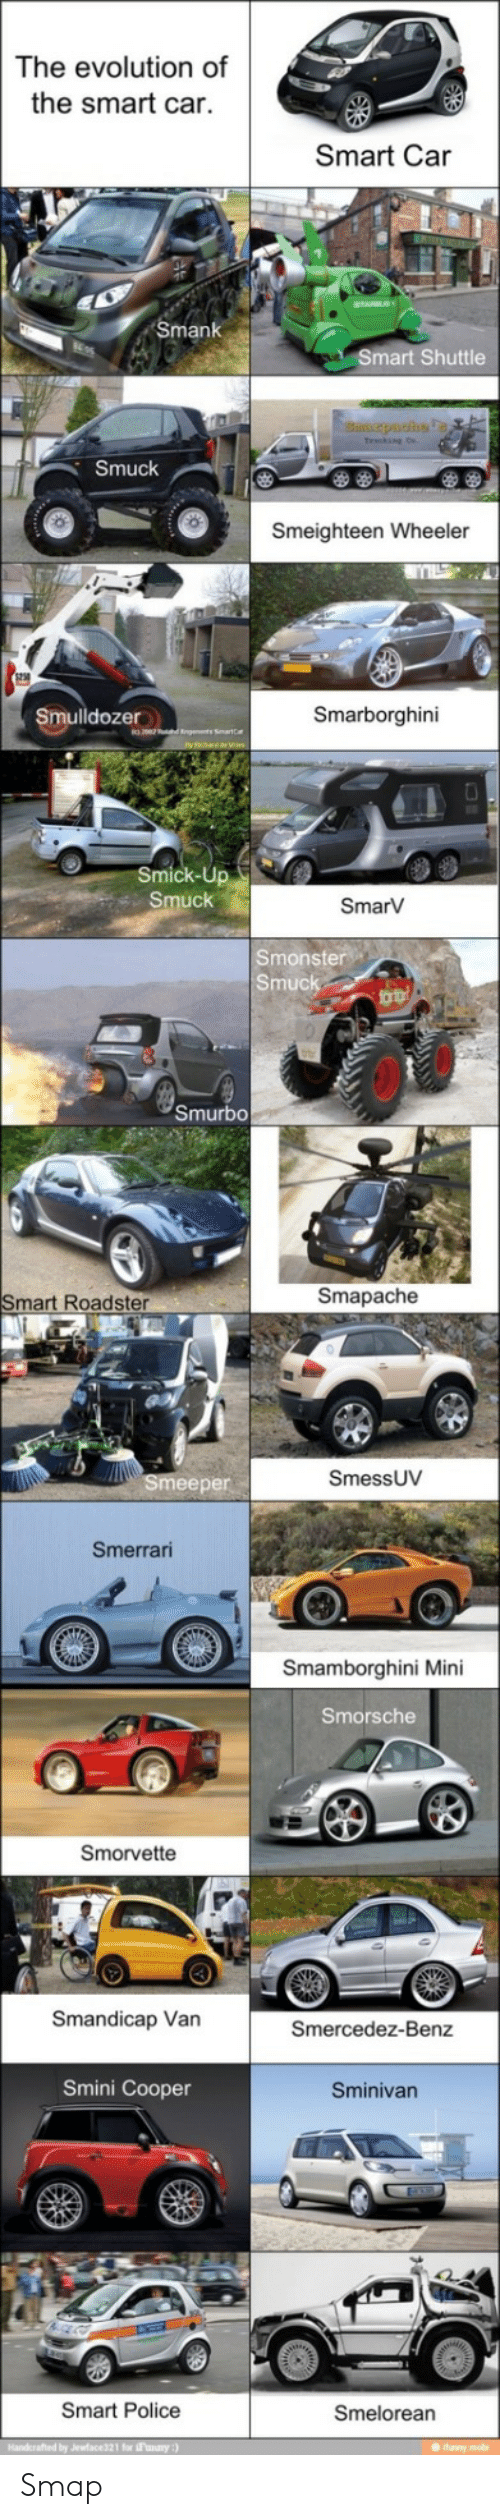 Wheeler: The evolution of  the smart car.  Smart Car  Smank  Smart Shuttle  puahs  Smuck  Smeighteen Wheeler  Smarborghini  Smulldozer  Smick-Up  Smuck  SmarV  Smonster  Smuck  Smurbo  Smapache  Smart Roadster  SmessUV  Smeeper  Smerrari  Smamborghini Mini  Smorsche  Smorvette  Smandicap Van  Smercedez-Benz  Smini Cooper  Sminivan  Smart Police  Smelorean  Handerafted by Jewface321 for Fanany:)  IS Smap